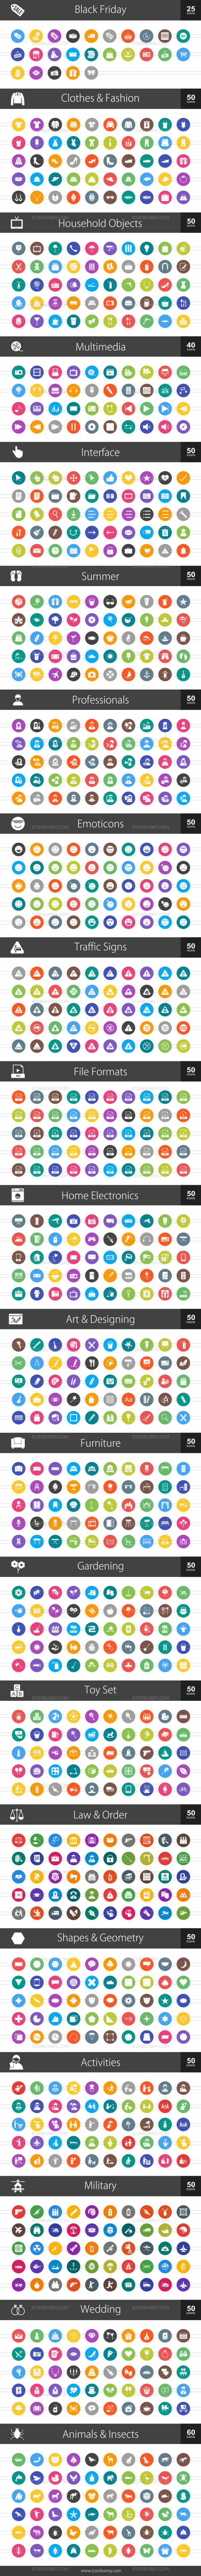 1025 Flat Round Icons Bundle - Preview - IconBunny